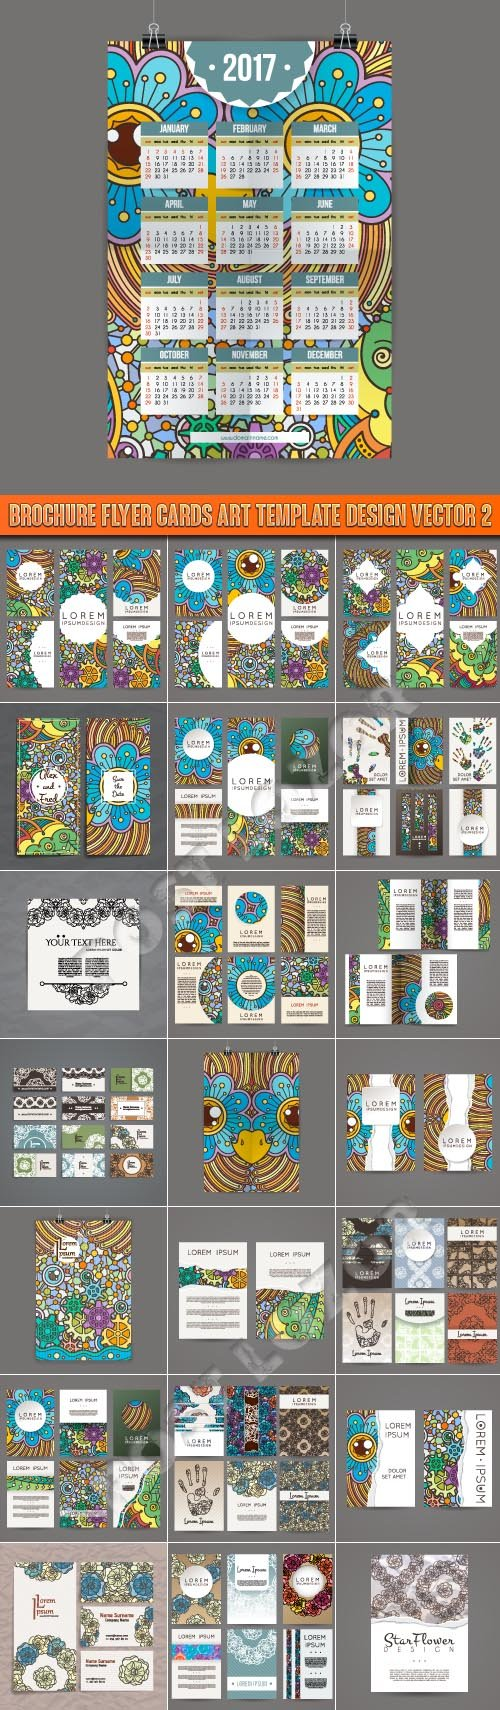 Brochure flyer cards art template design vector 2